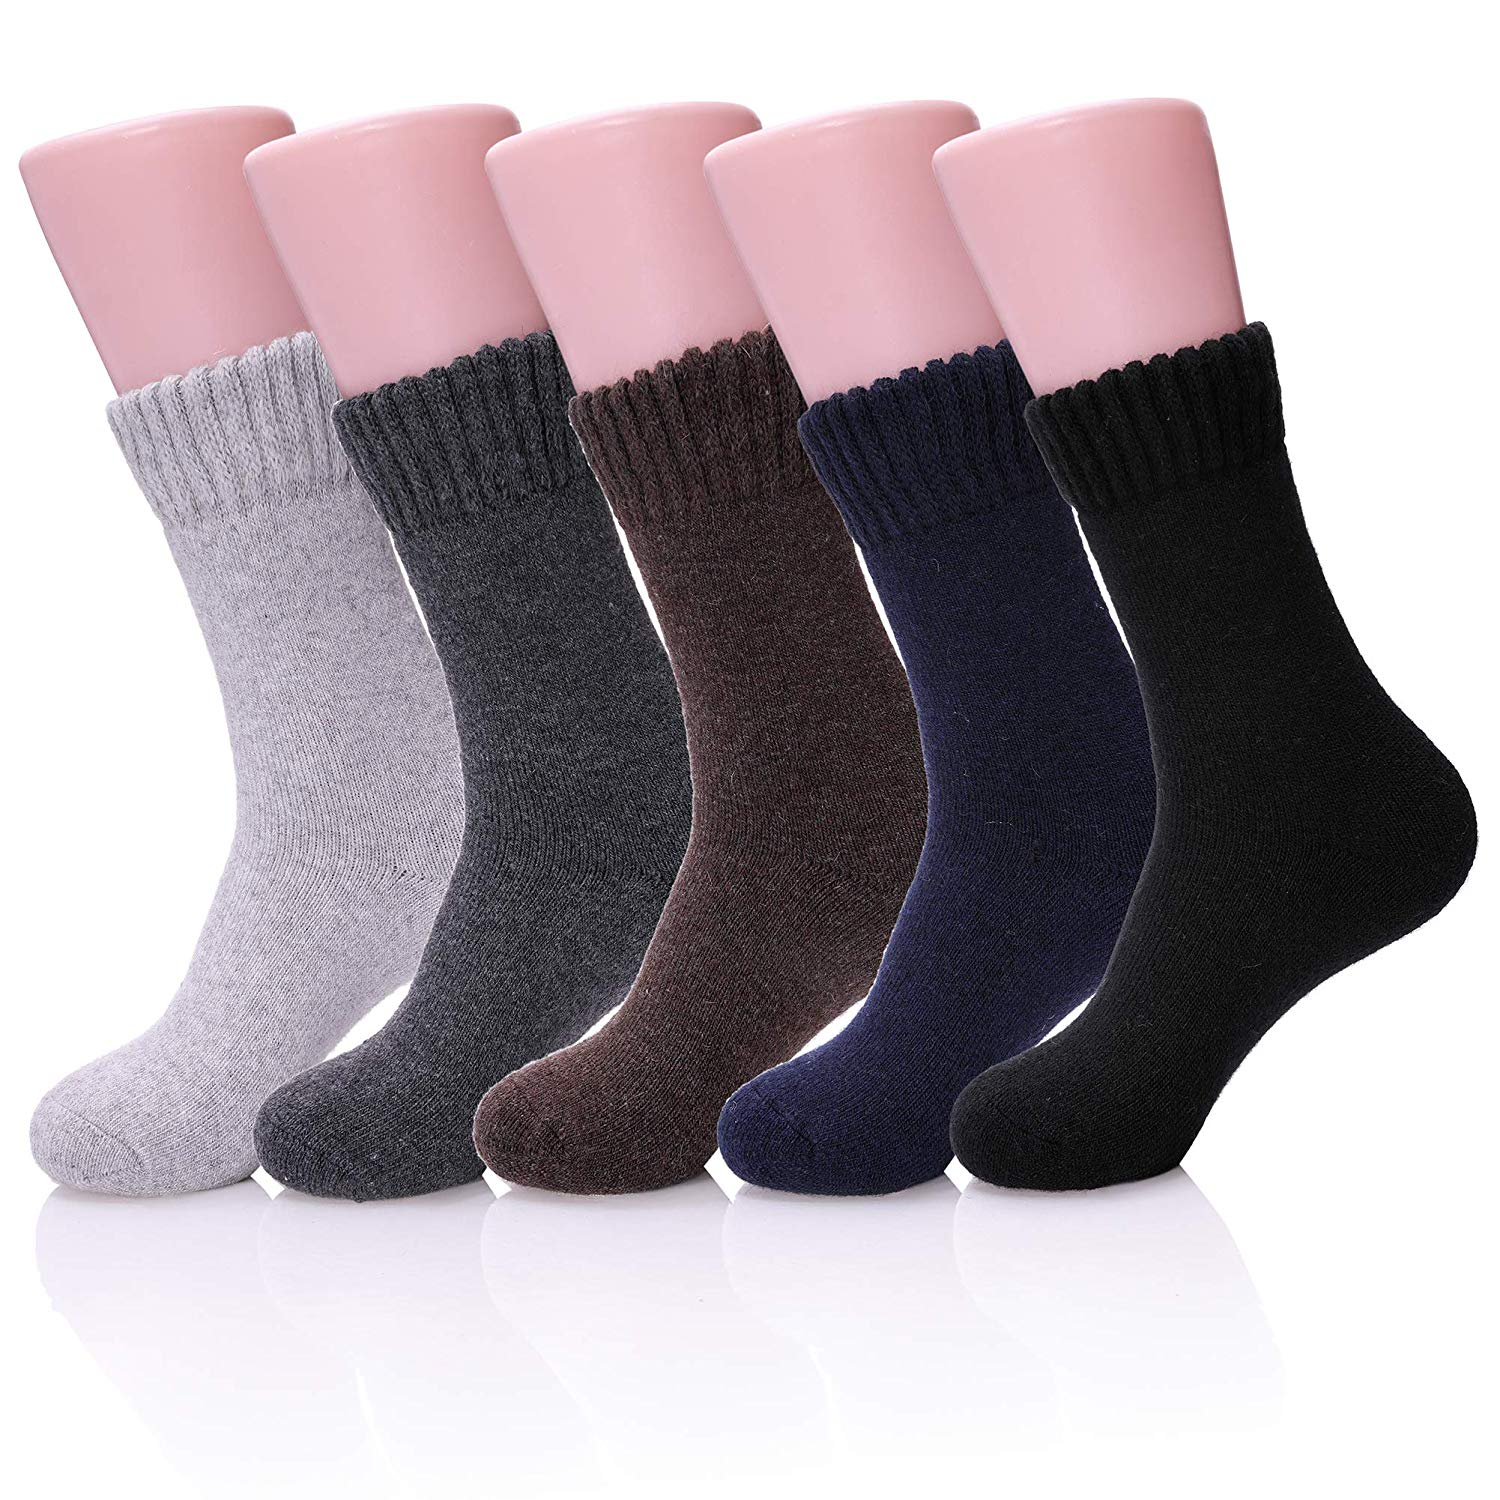 aa8d5a2528d Get Quotations · AOXION 5 Pairs Mens Thick Heavy Warm Comfort Wool Cotton Knit  Crew Winter Socks